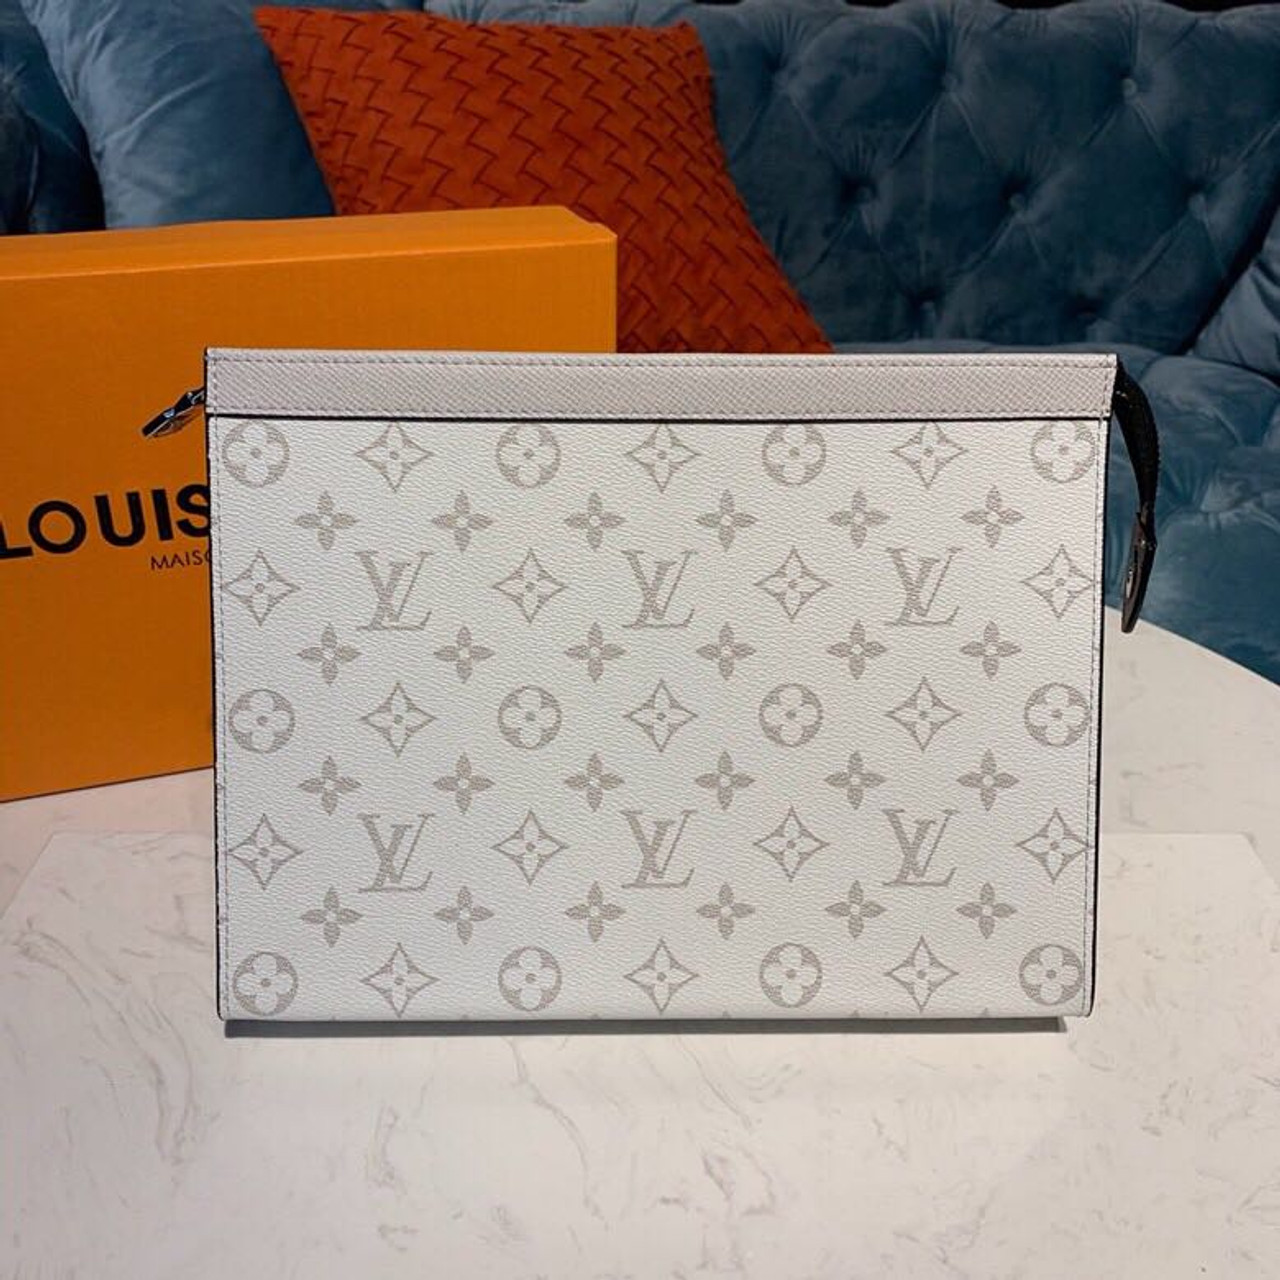 3ac06e925a Louis Vuitton Pochette Voyage MM Bag 28cm Monogram Antarctica Canvas/Taiga  Leather Spring/Summer 2019 Collection M61692, White